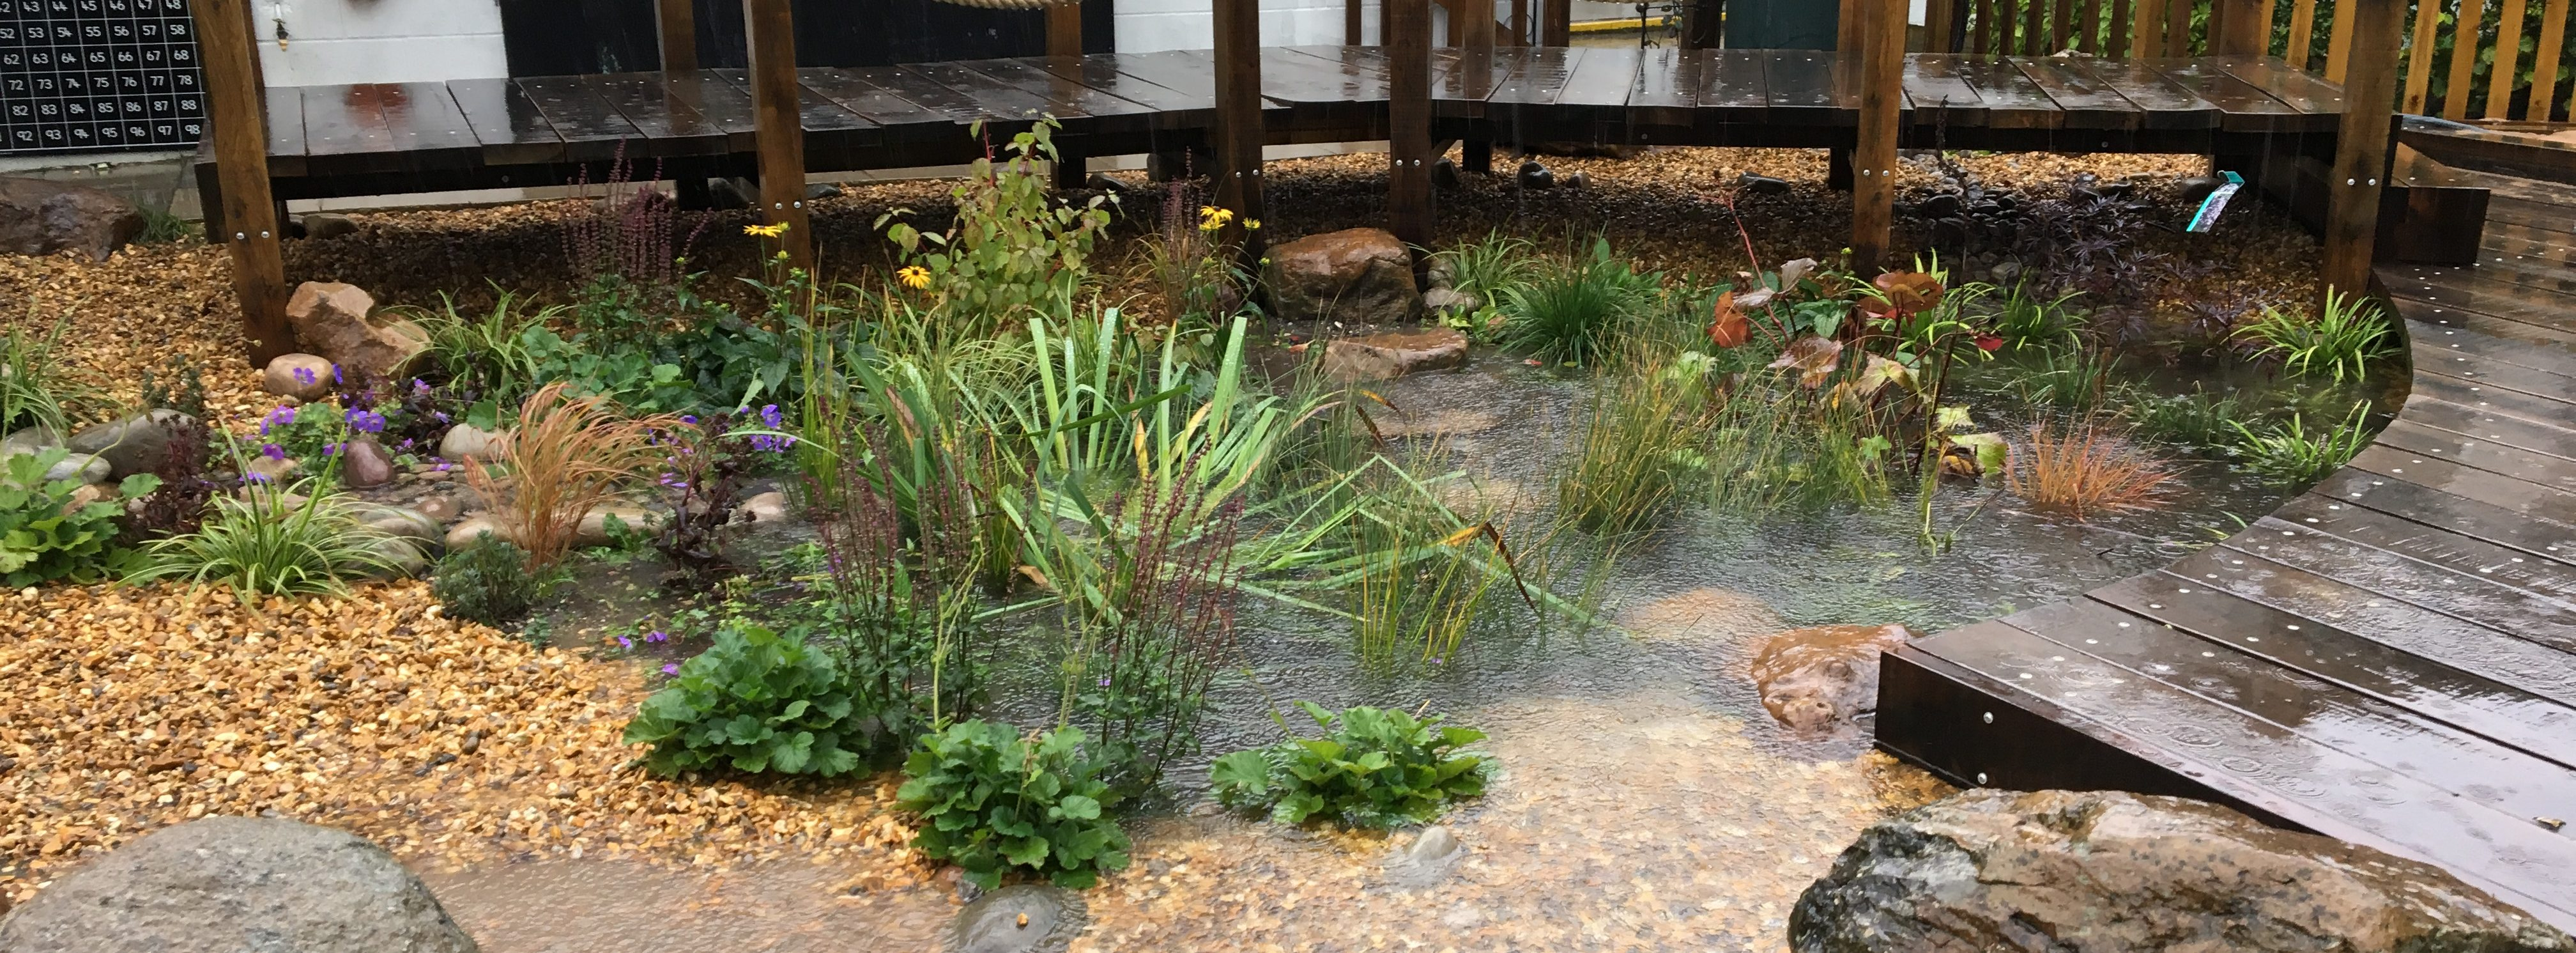 Aldbourne rain garden in heavy rainstorm